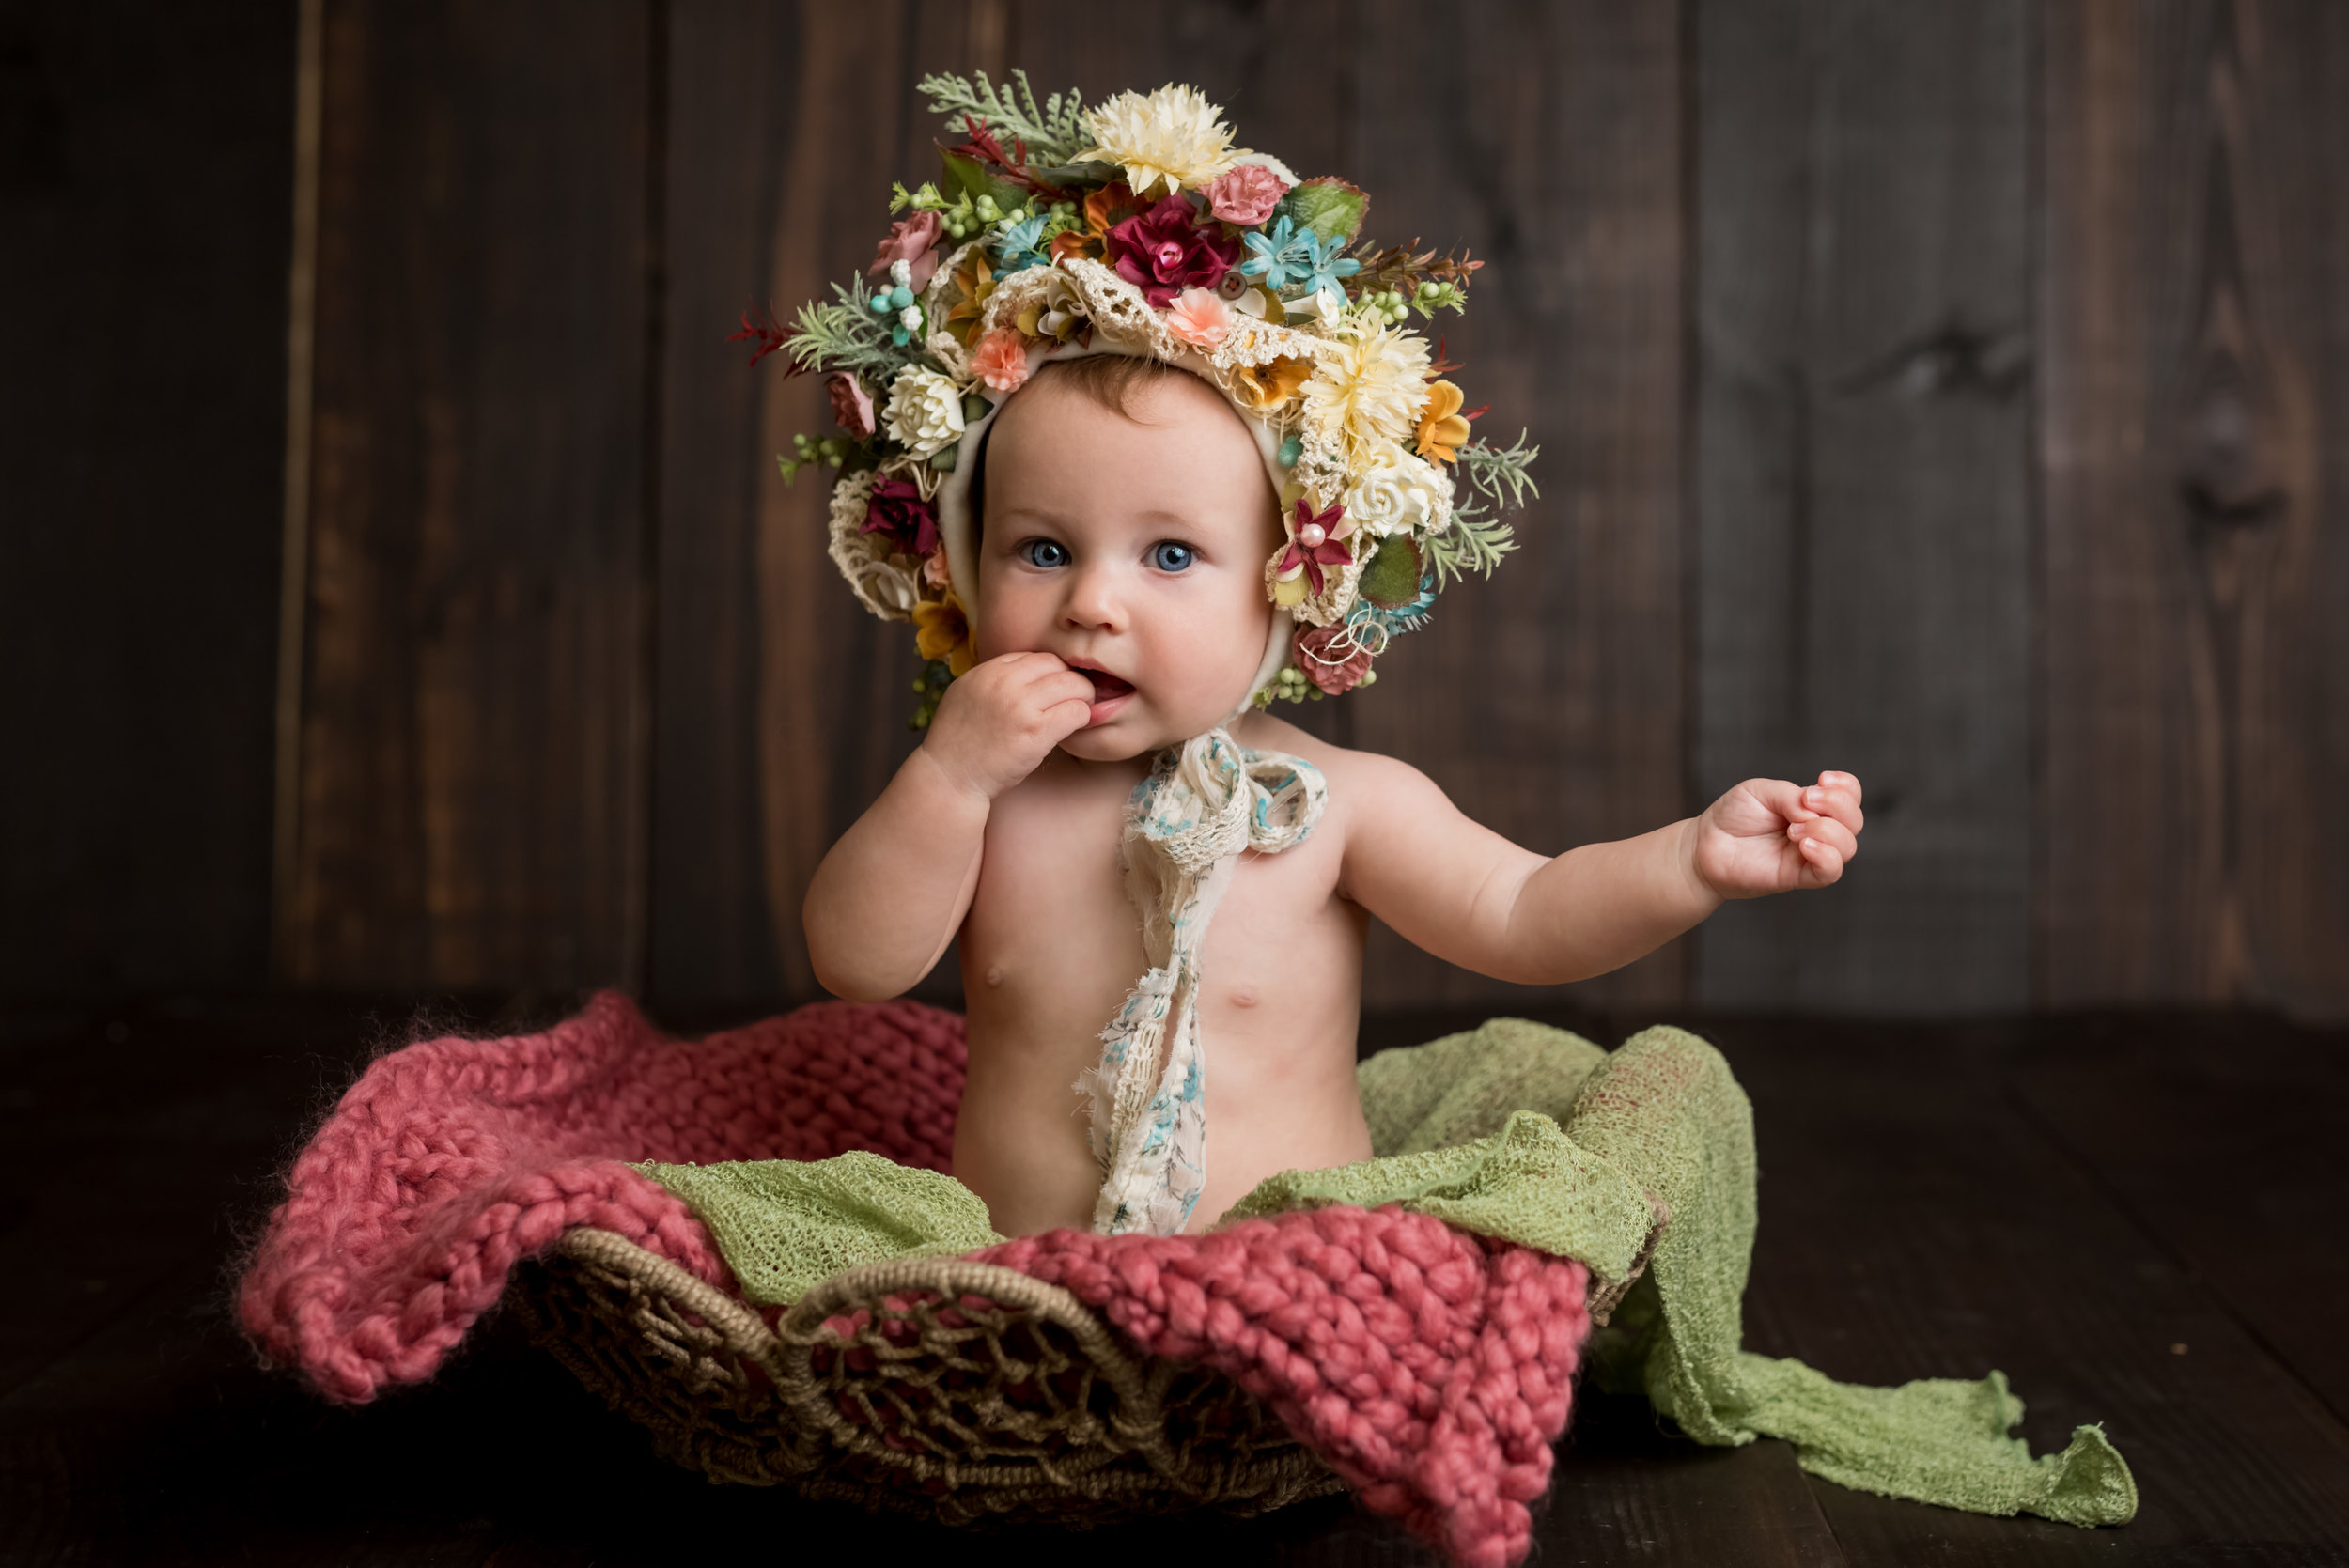 sweet girl sucking on her fingers in a floral bonnet during a sitter session with junebug photography studio in manhattan, ks